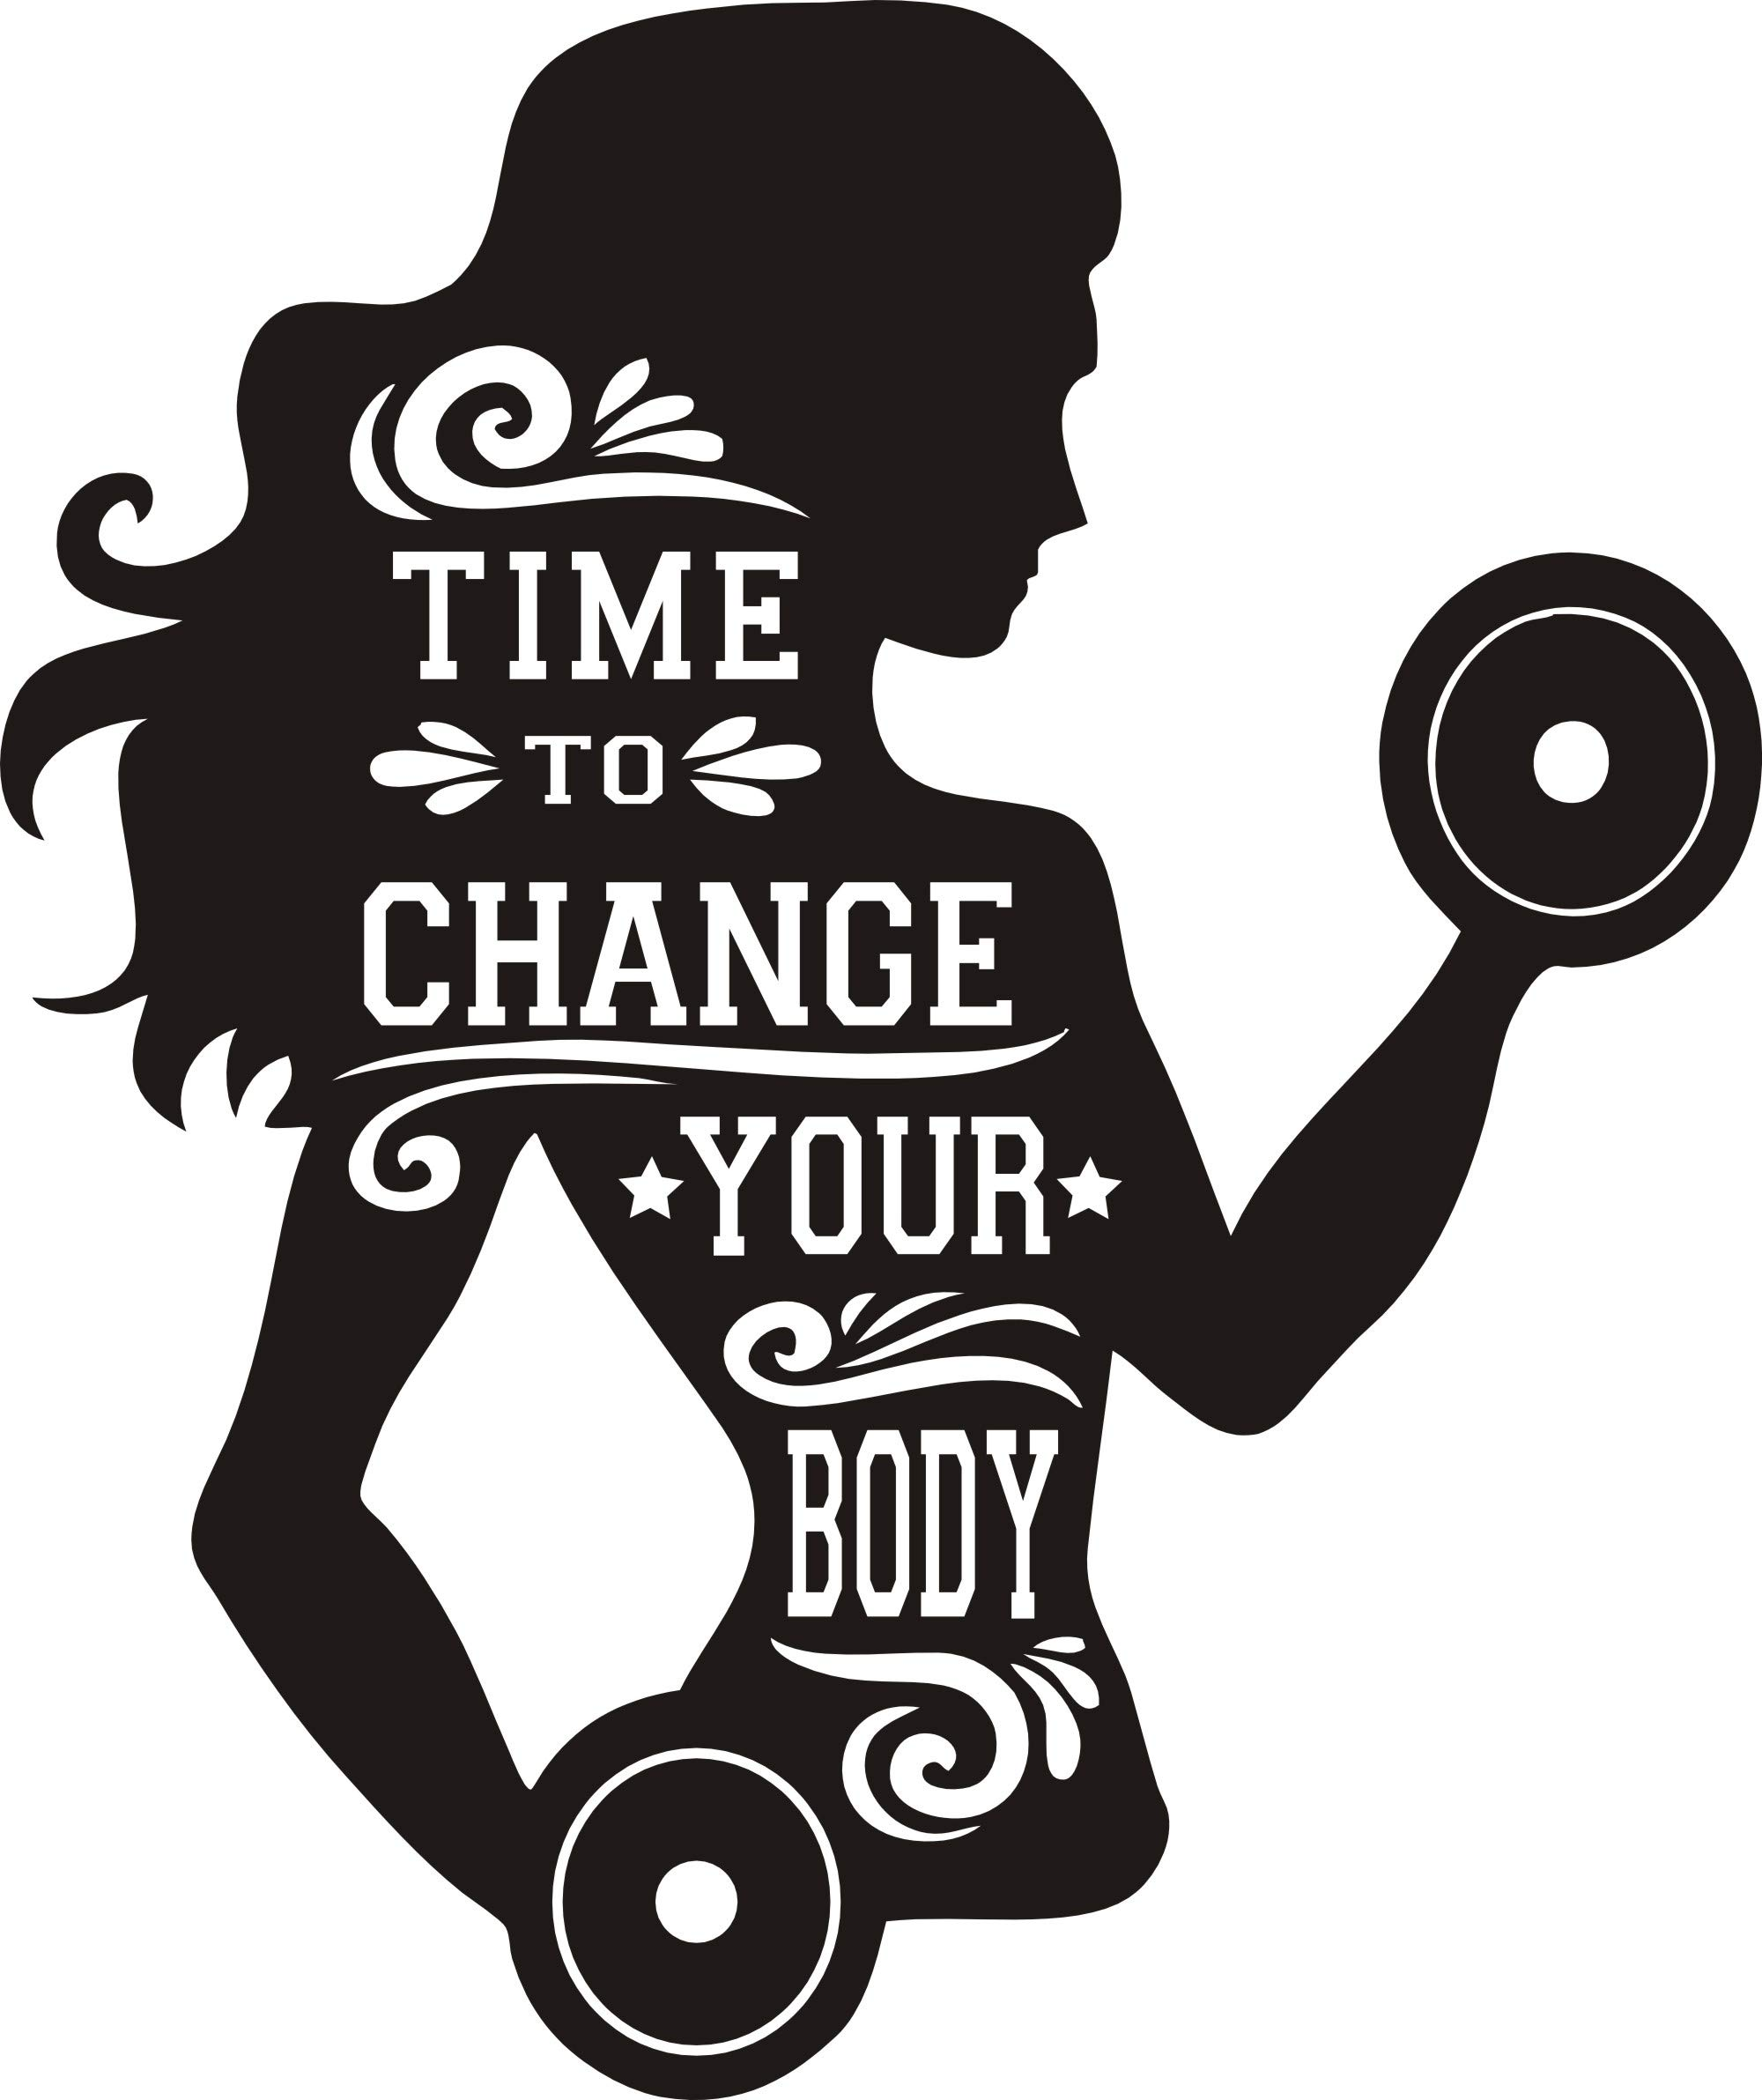 Girls Gym Bodybuilding Wall Decal Removable Wall Art Girls Women Inspiration Quote Its Time to Change Your Body Fitness Crossfit Wall Art Sticker Mural NY-183 (Black, 57X70CM)